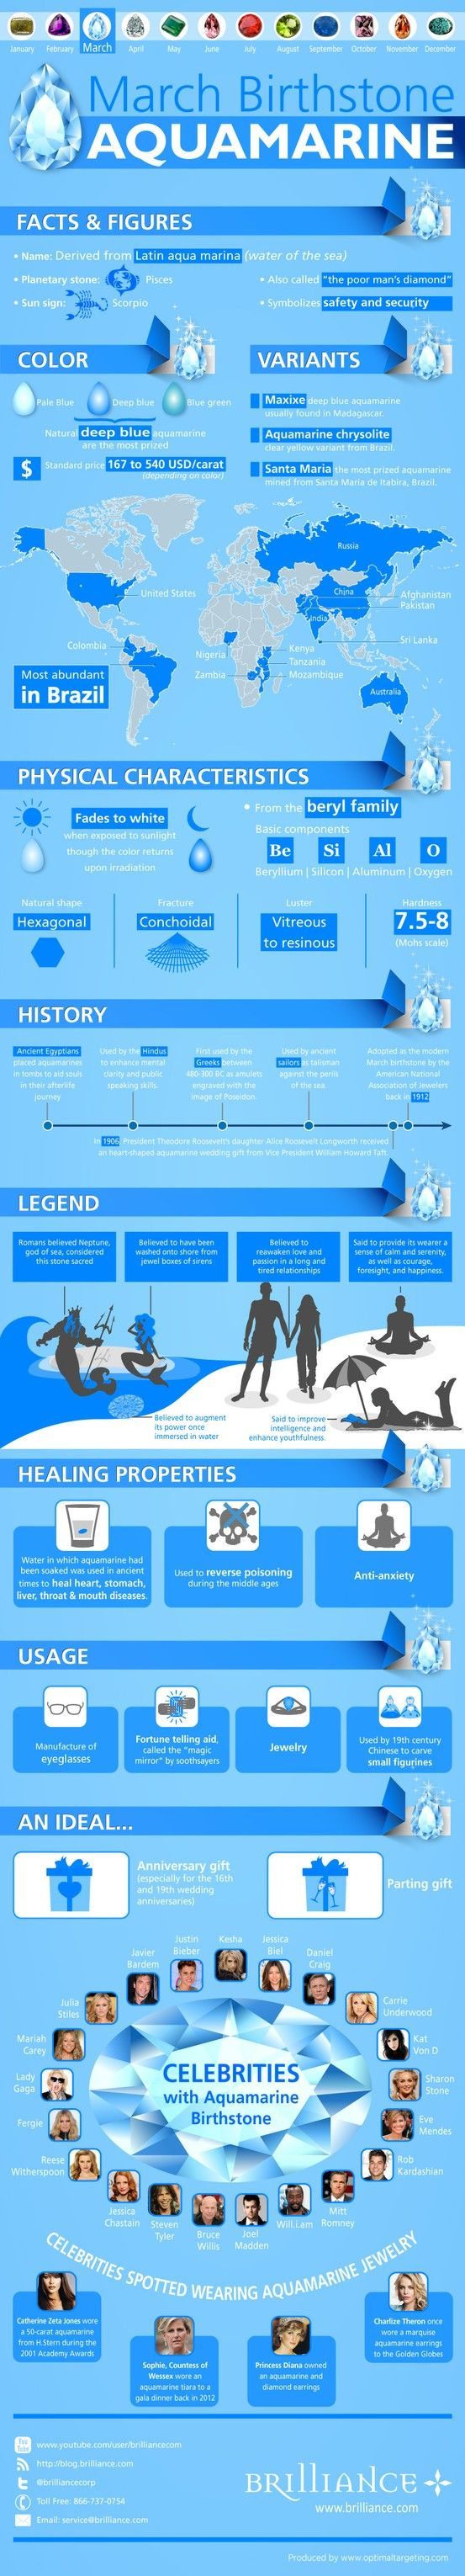 #Infographic for #Aquamarine, the birthstone of March.